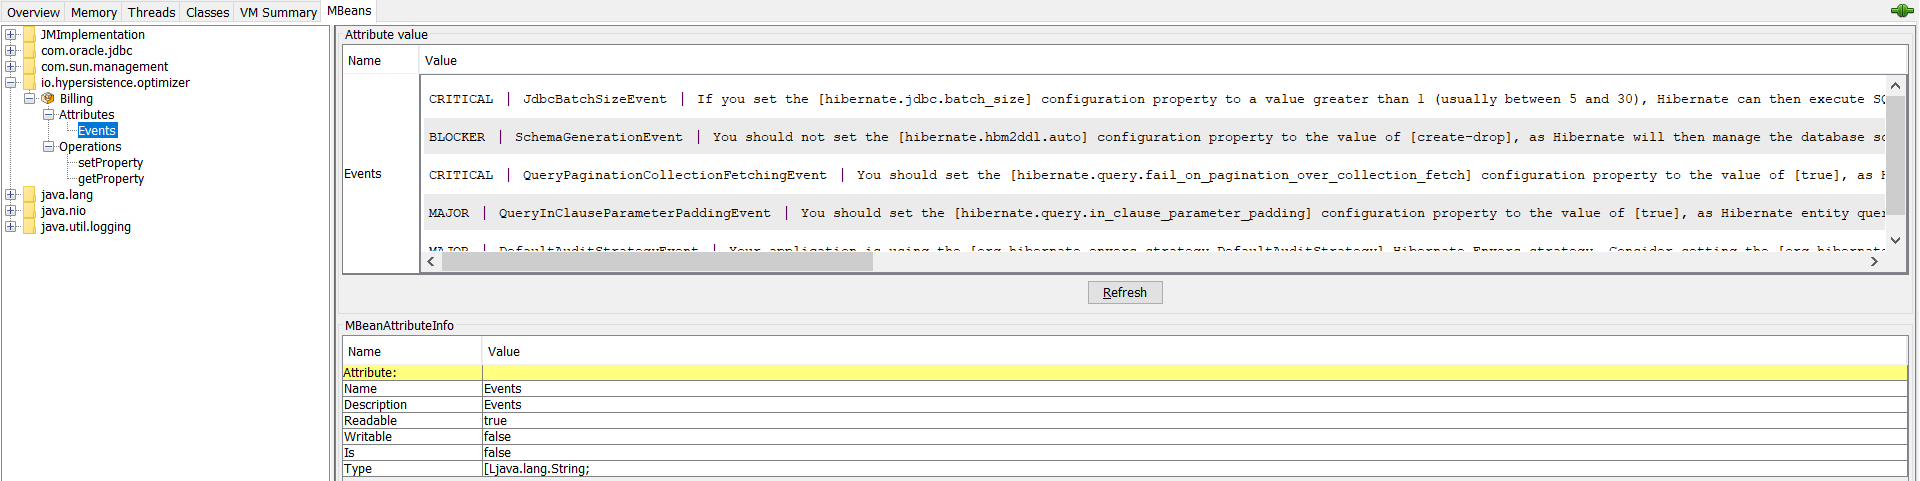 Hypersistence Optimizer - Getting the list of Events using the JMX bean